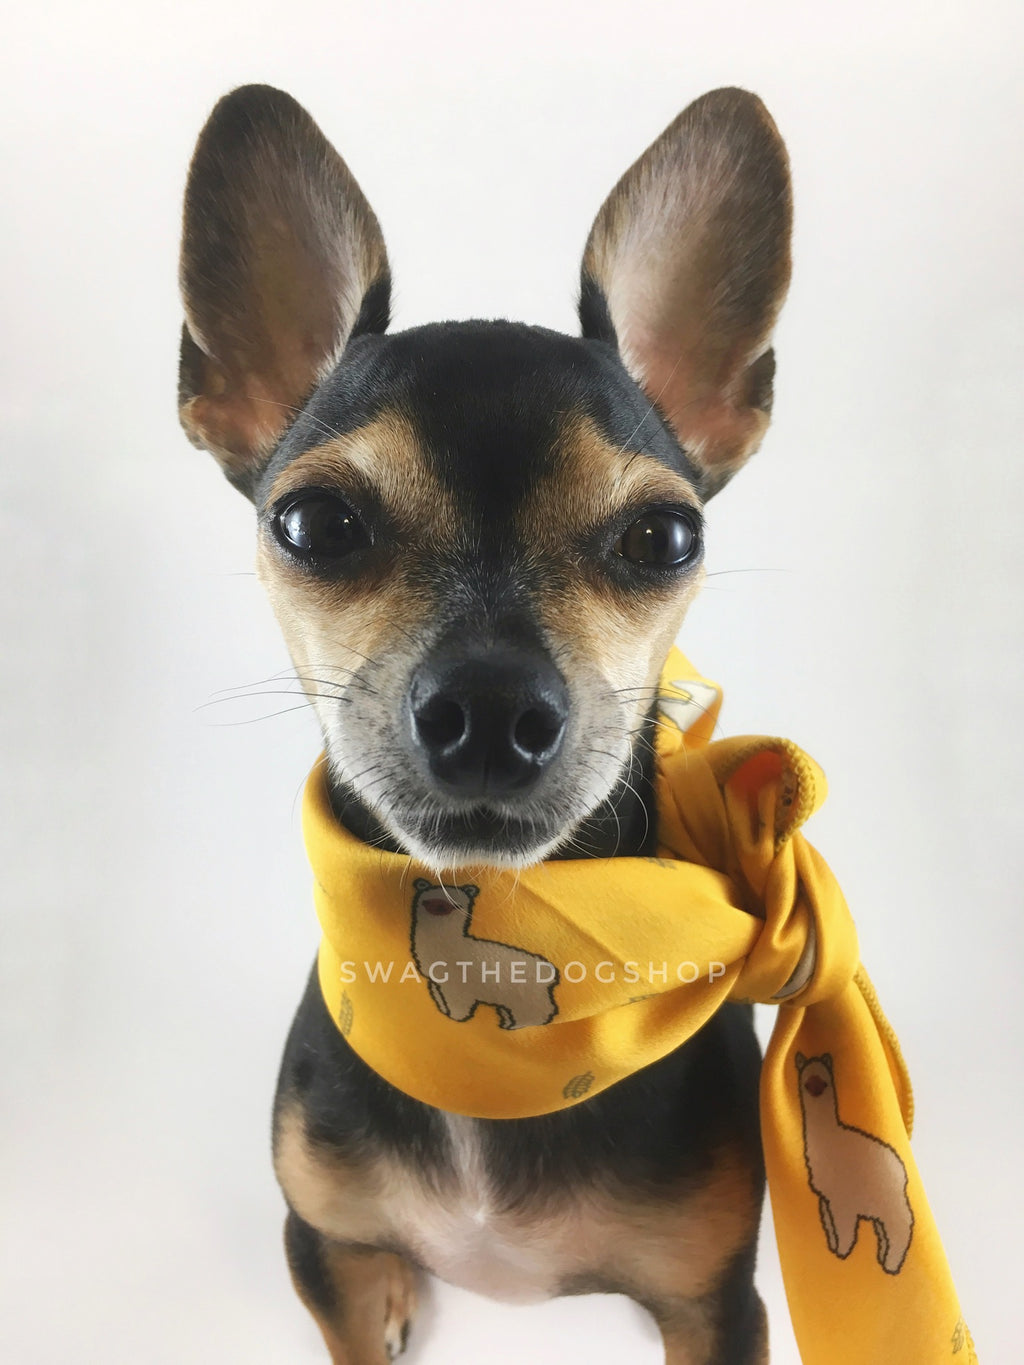 Lorenzo Llama Yellow Swagdana Scarf - Bust of Cute Chihuahua Wearing Swagdana Scarf as Neckerchief. Dog Bandana. Dog Scarf.